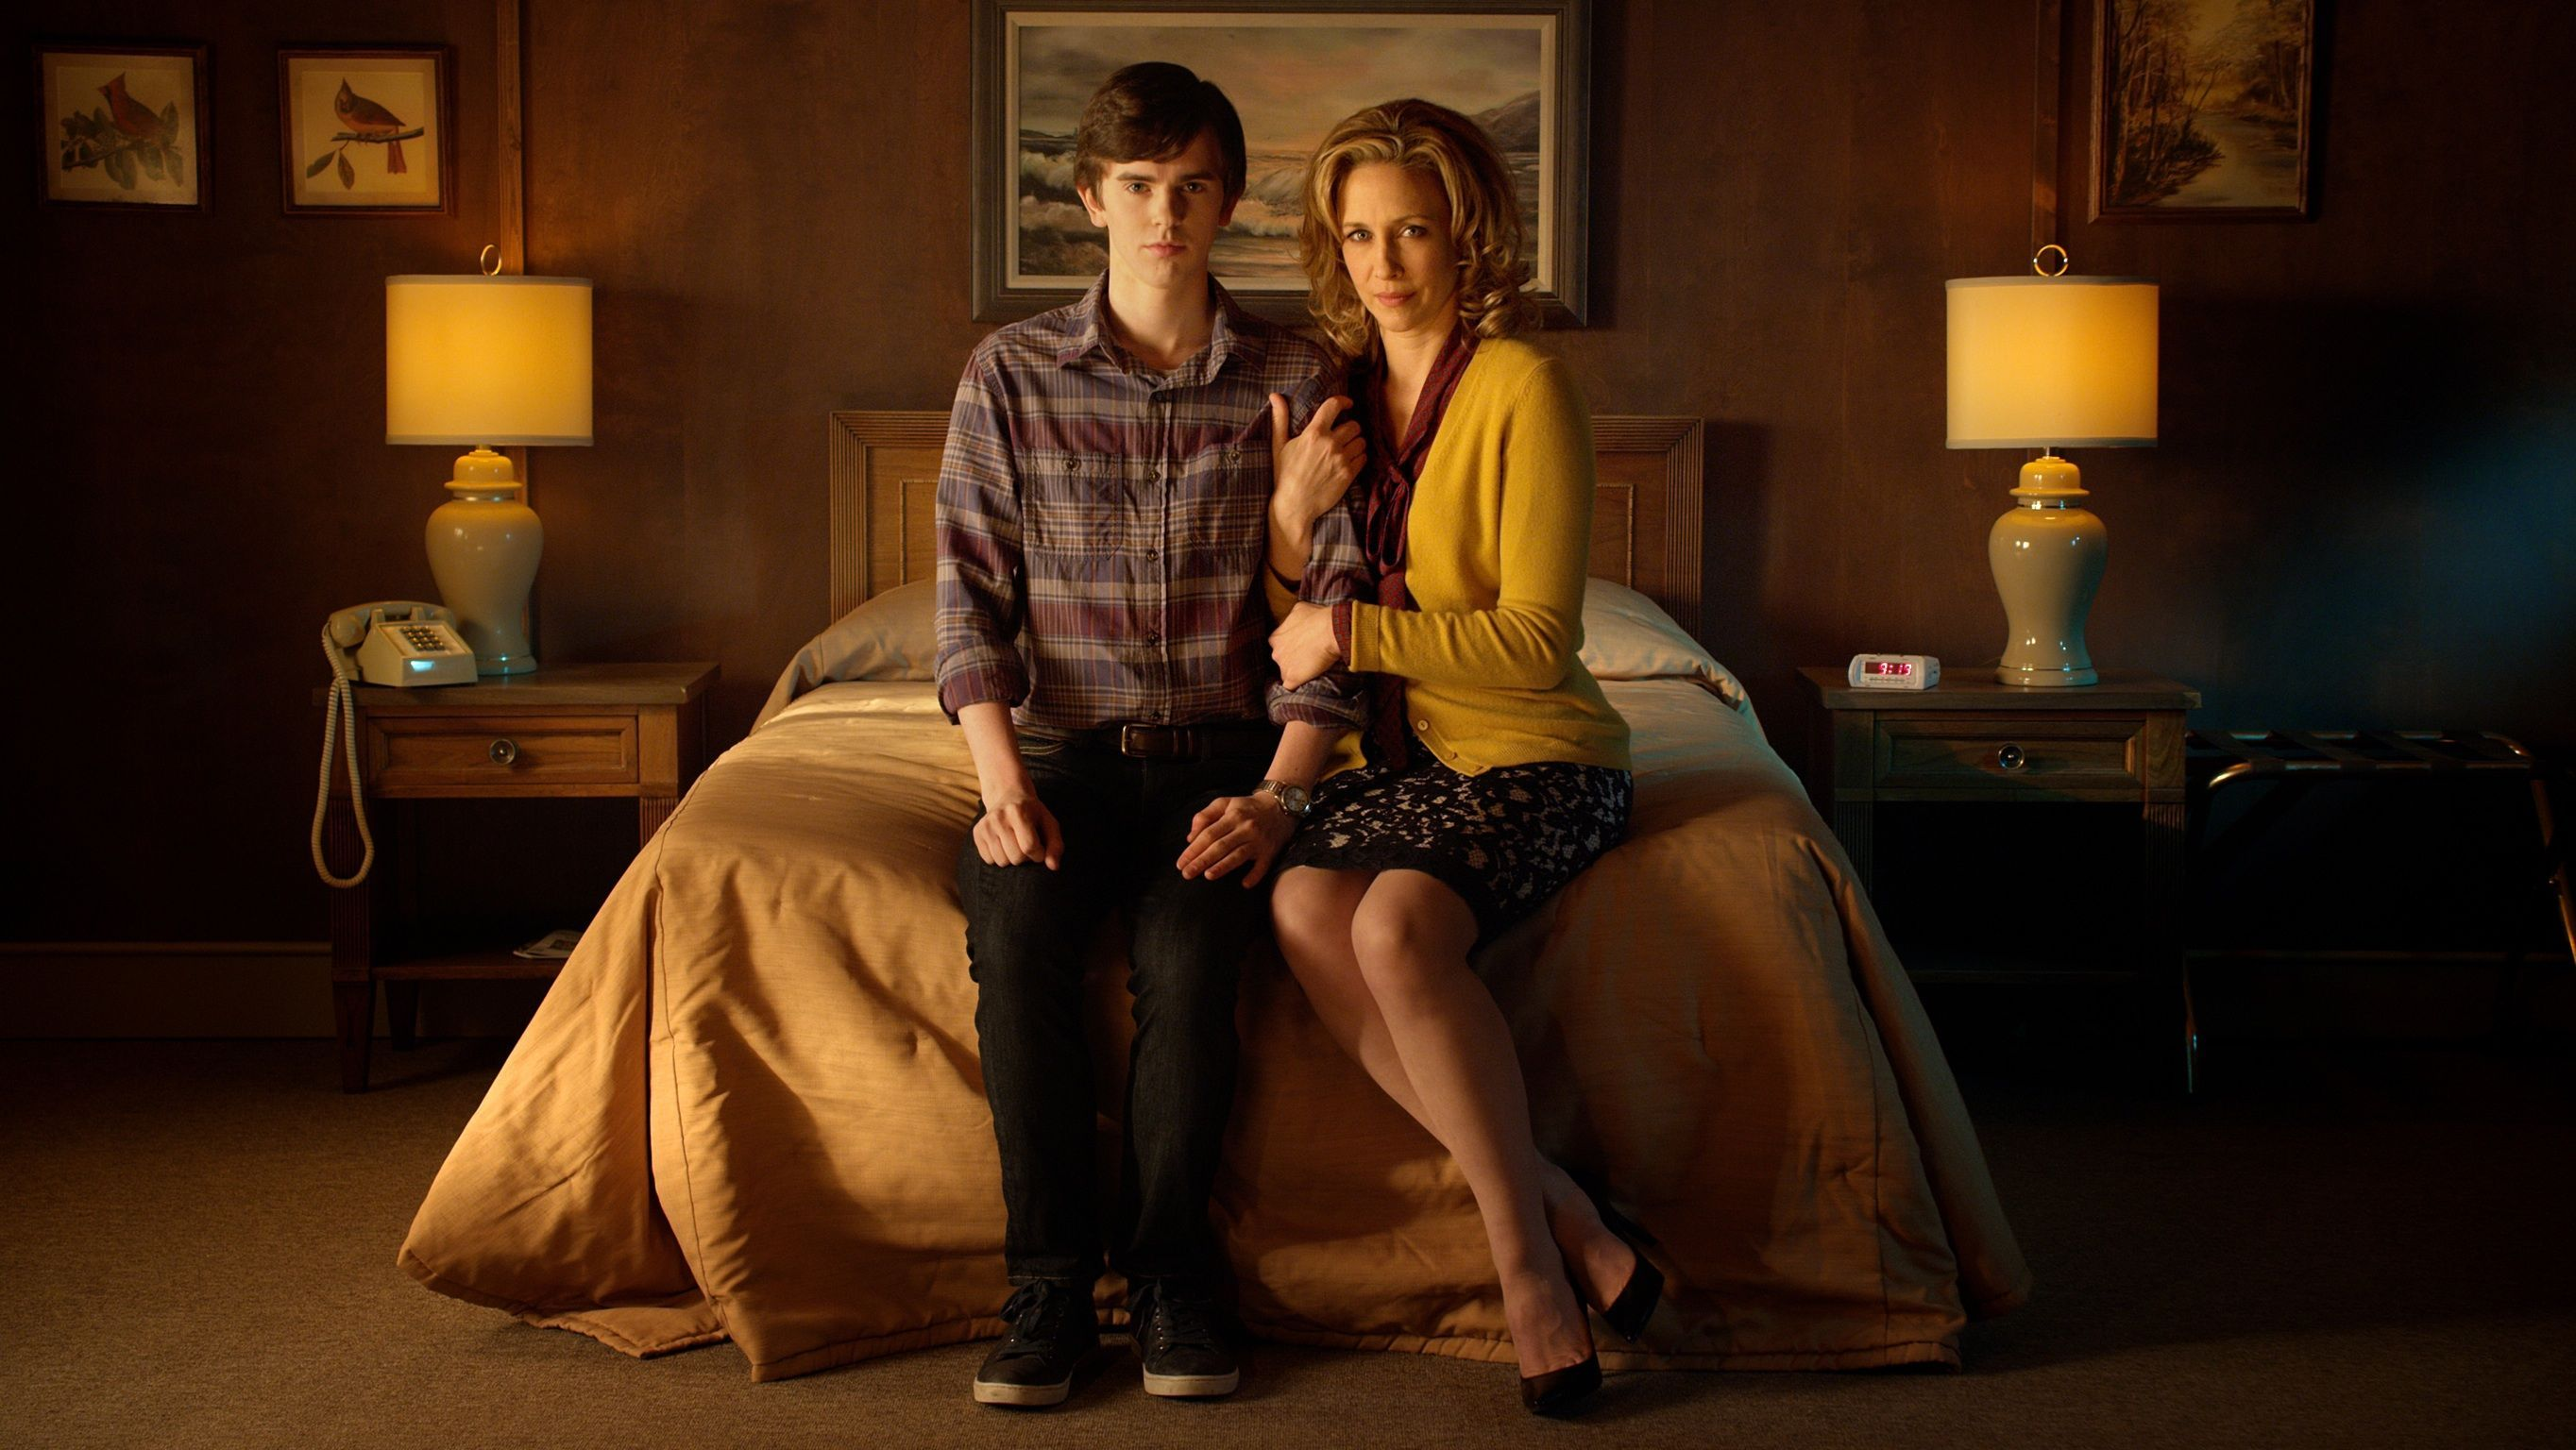 Norma and Norman of Bates Motel